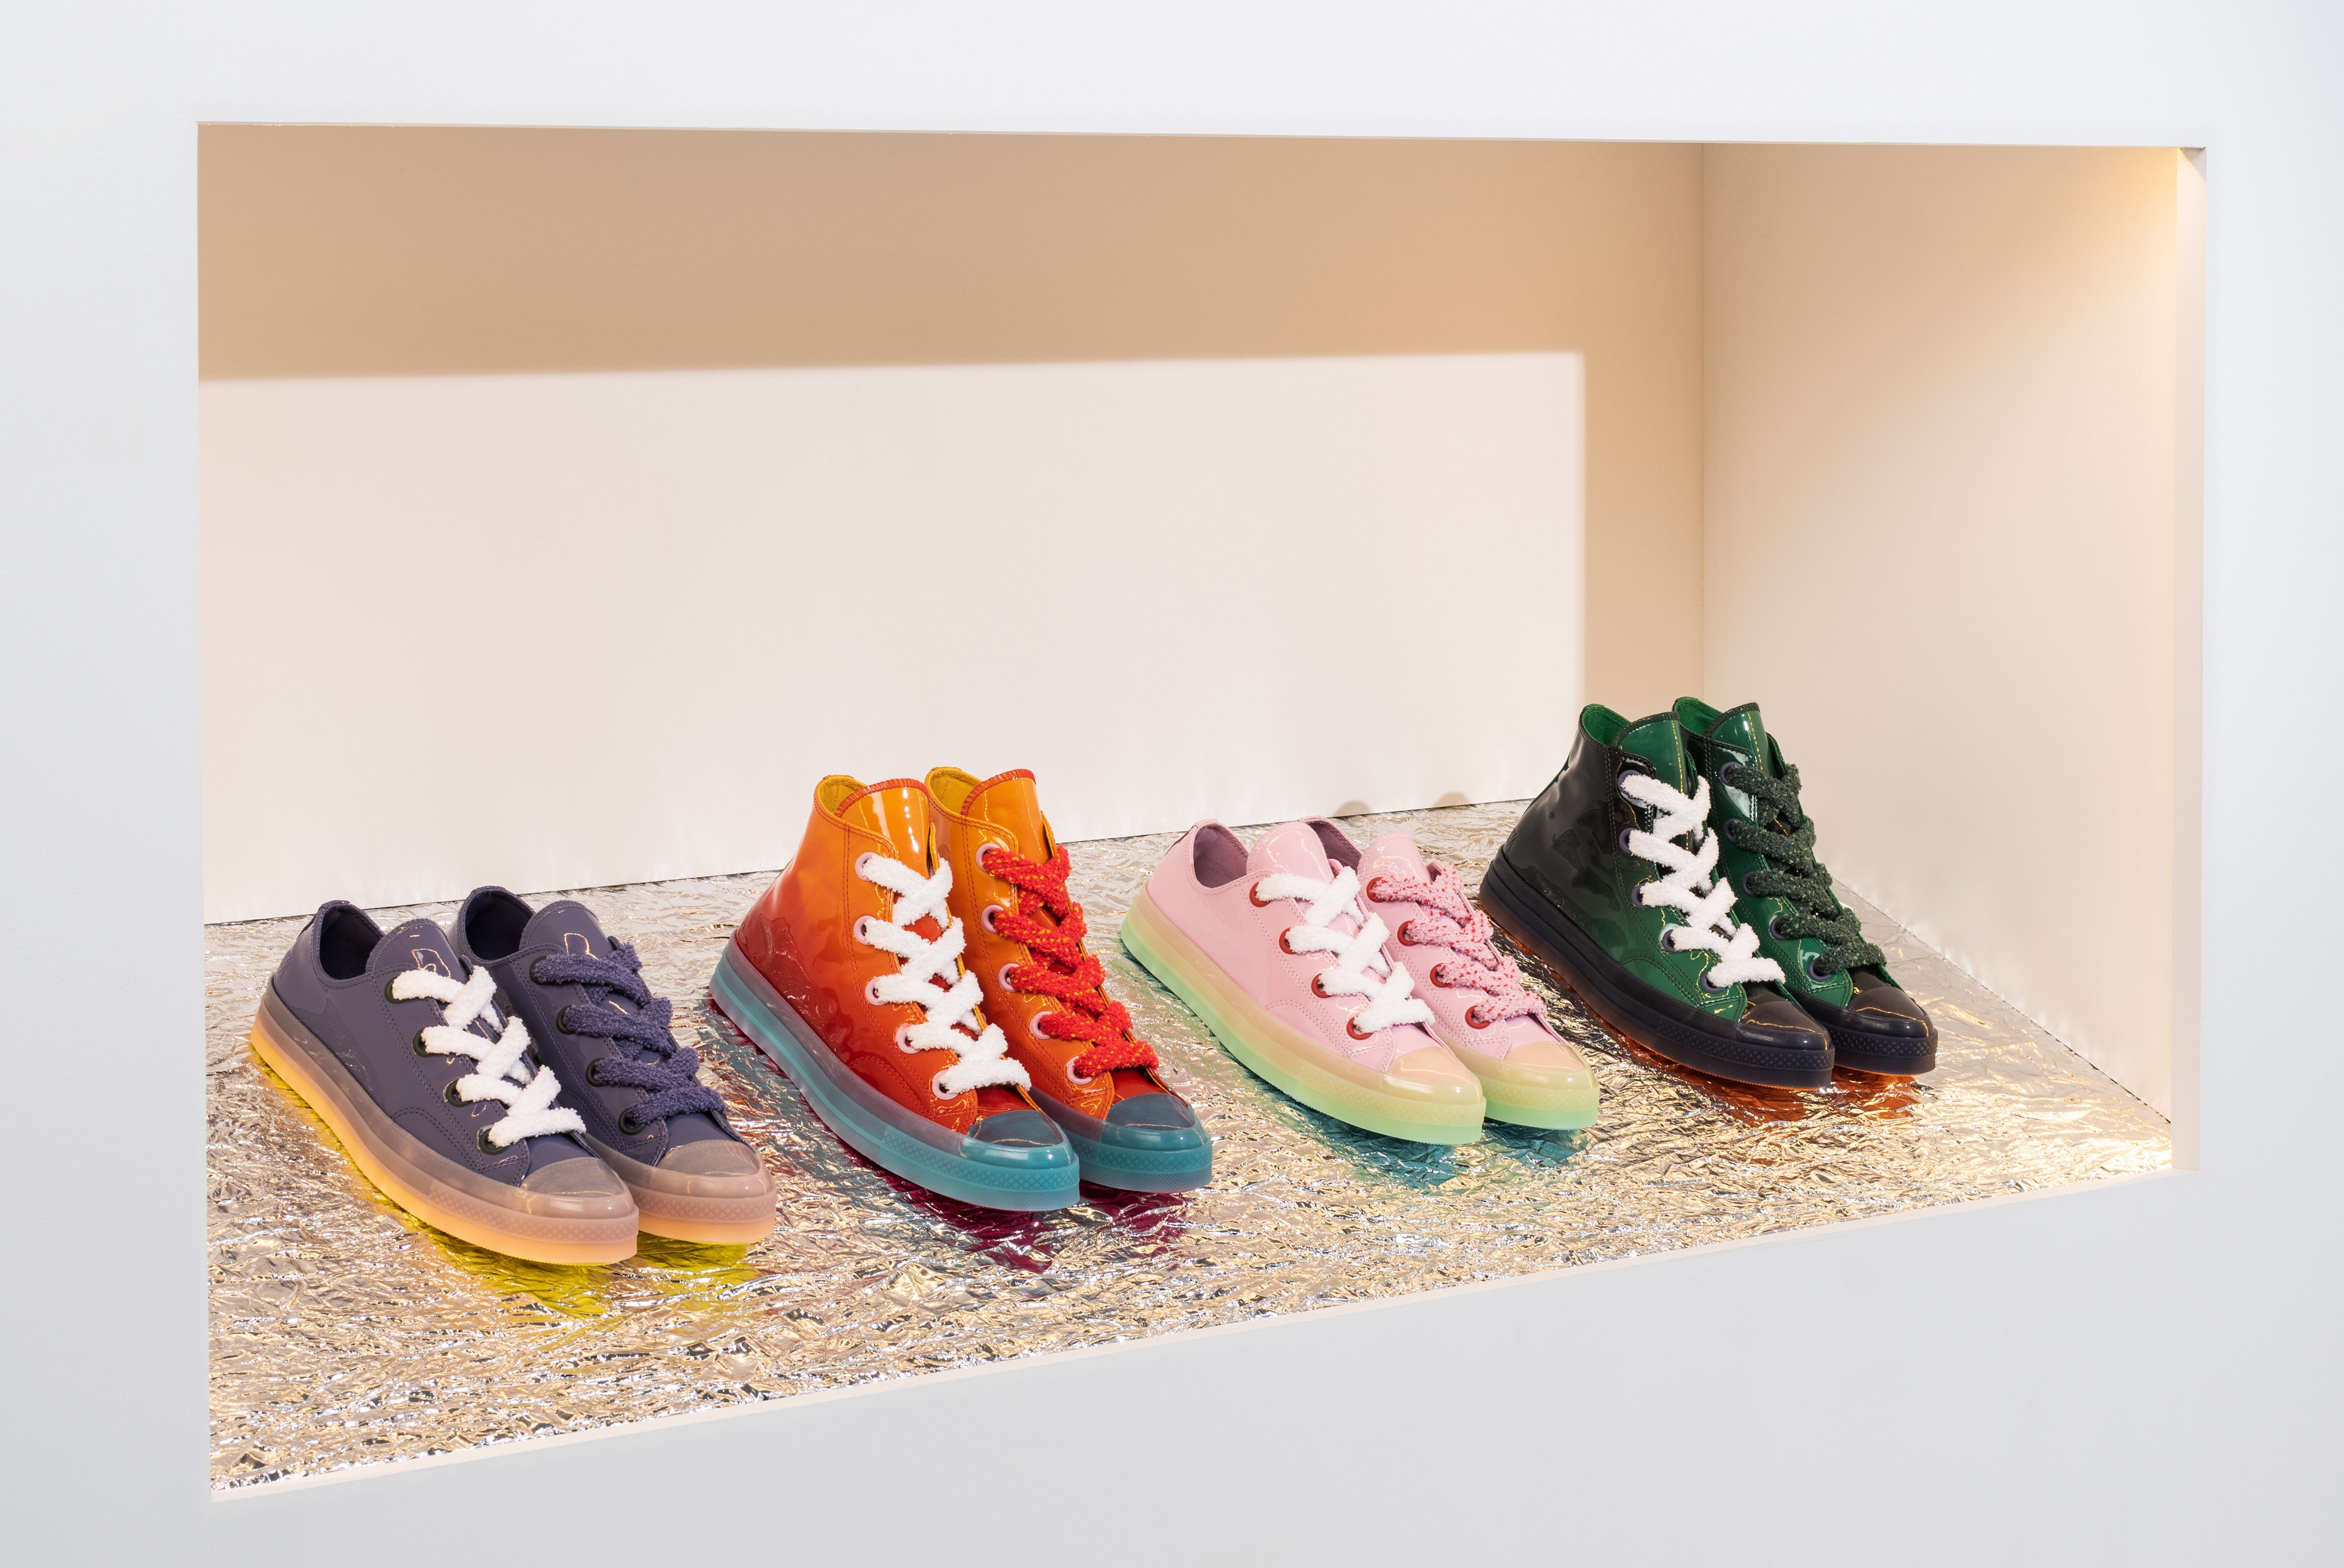 be31d5581730 ... Taylor All Star 70 High  J.W. Anderson Spring 2018  JW Anderson x  Converse Chuck 70 Toy Collection Release Date ...